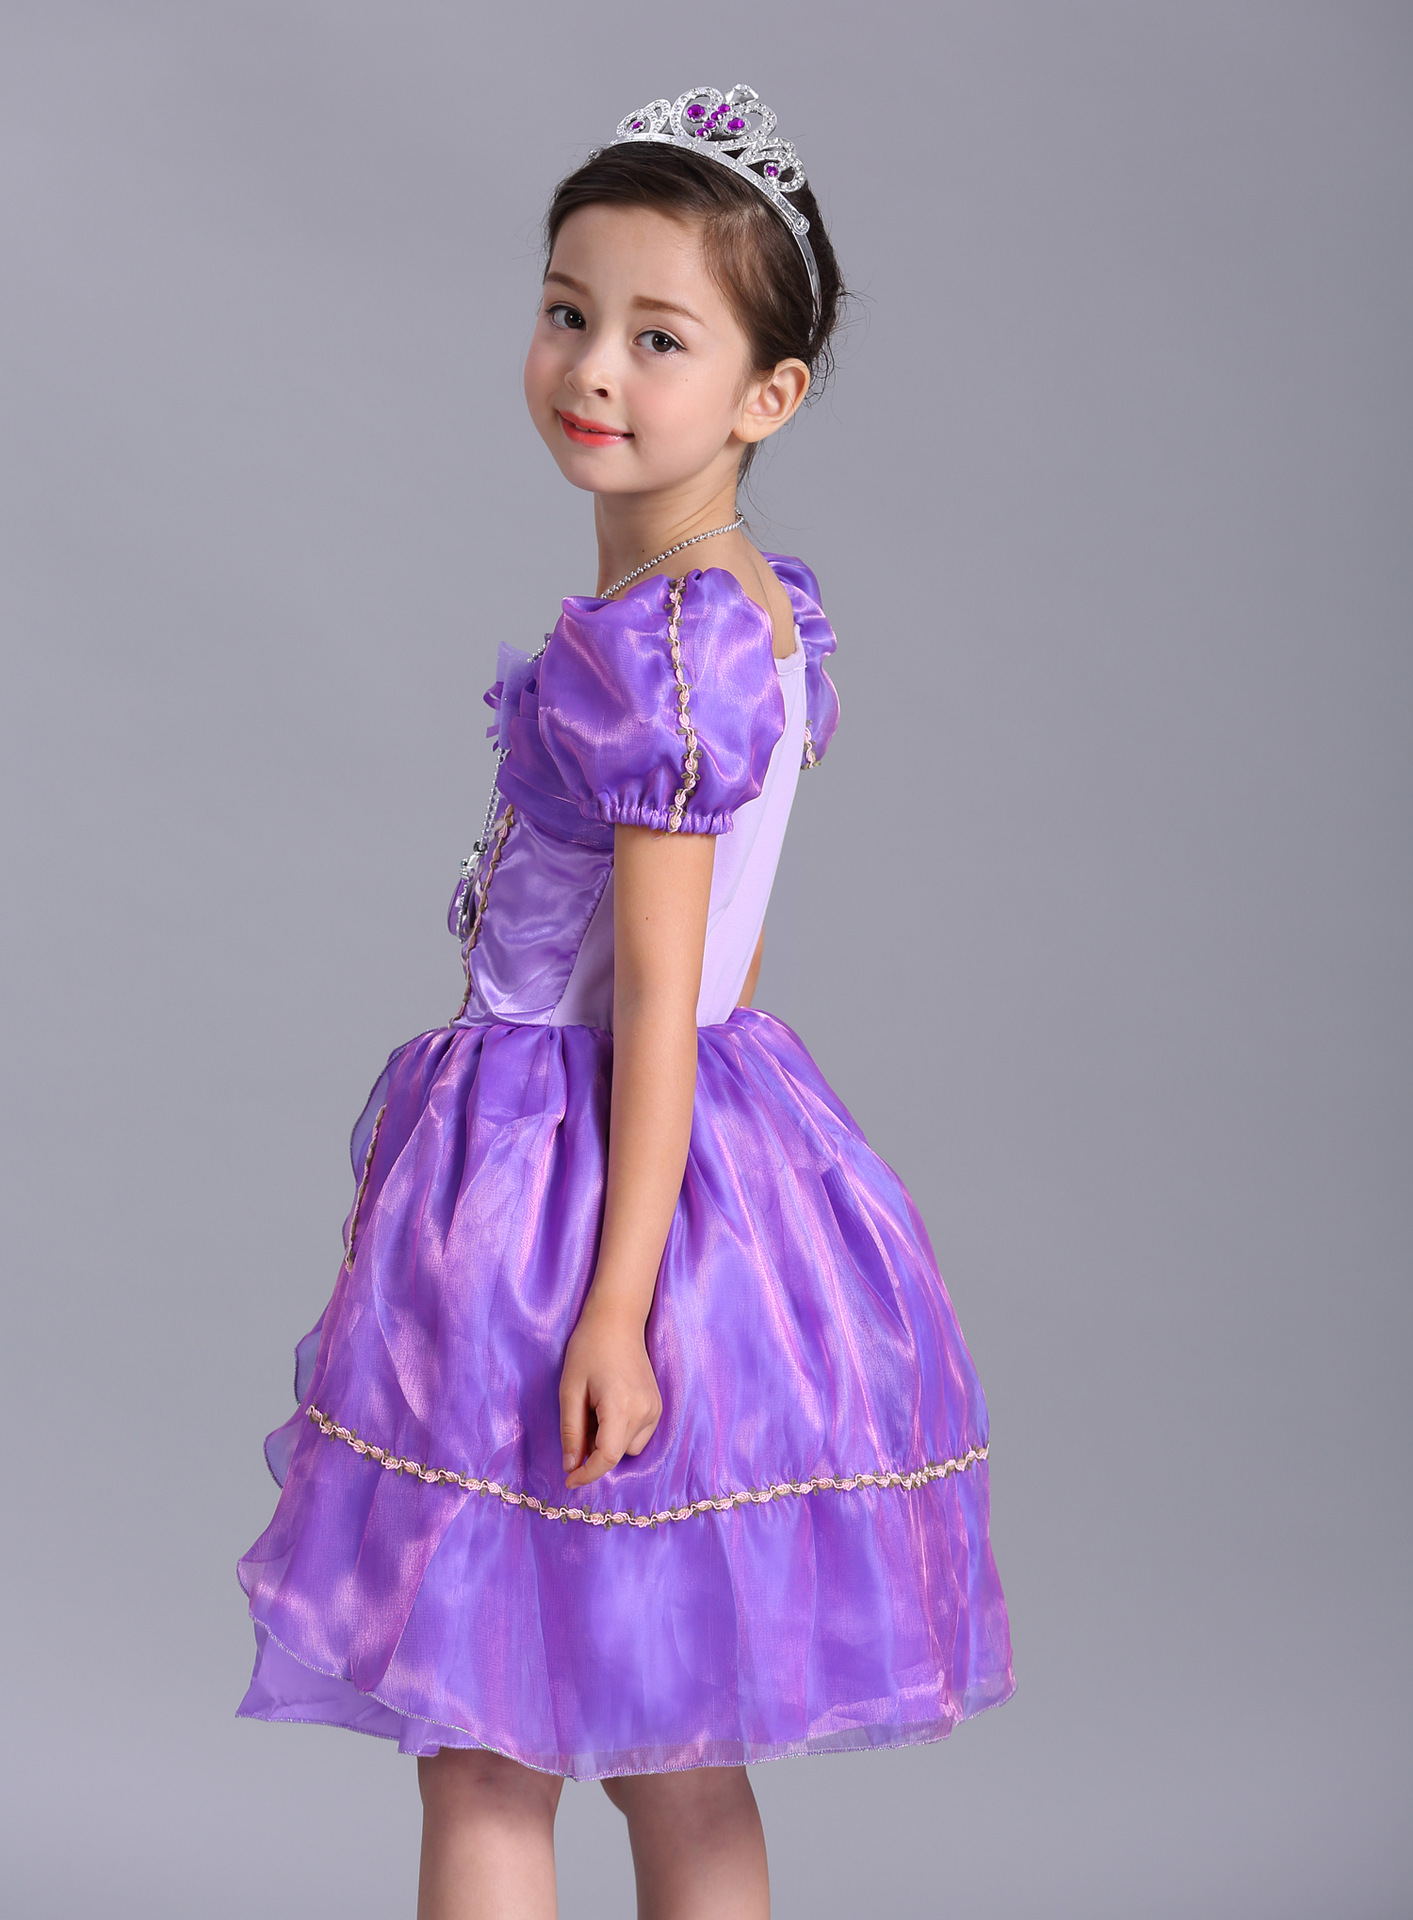 Kids infantil Baby Girl Tutu Dress Birthday Party Cosplay Costume